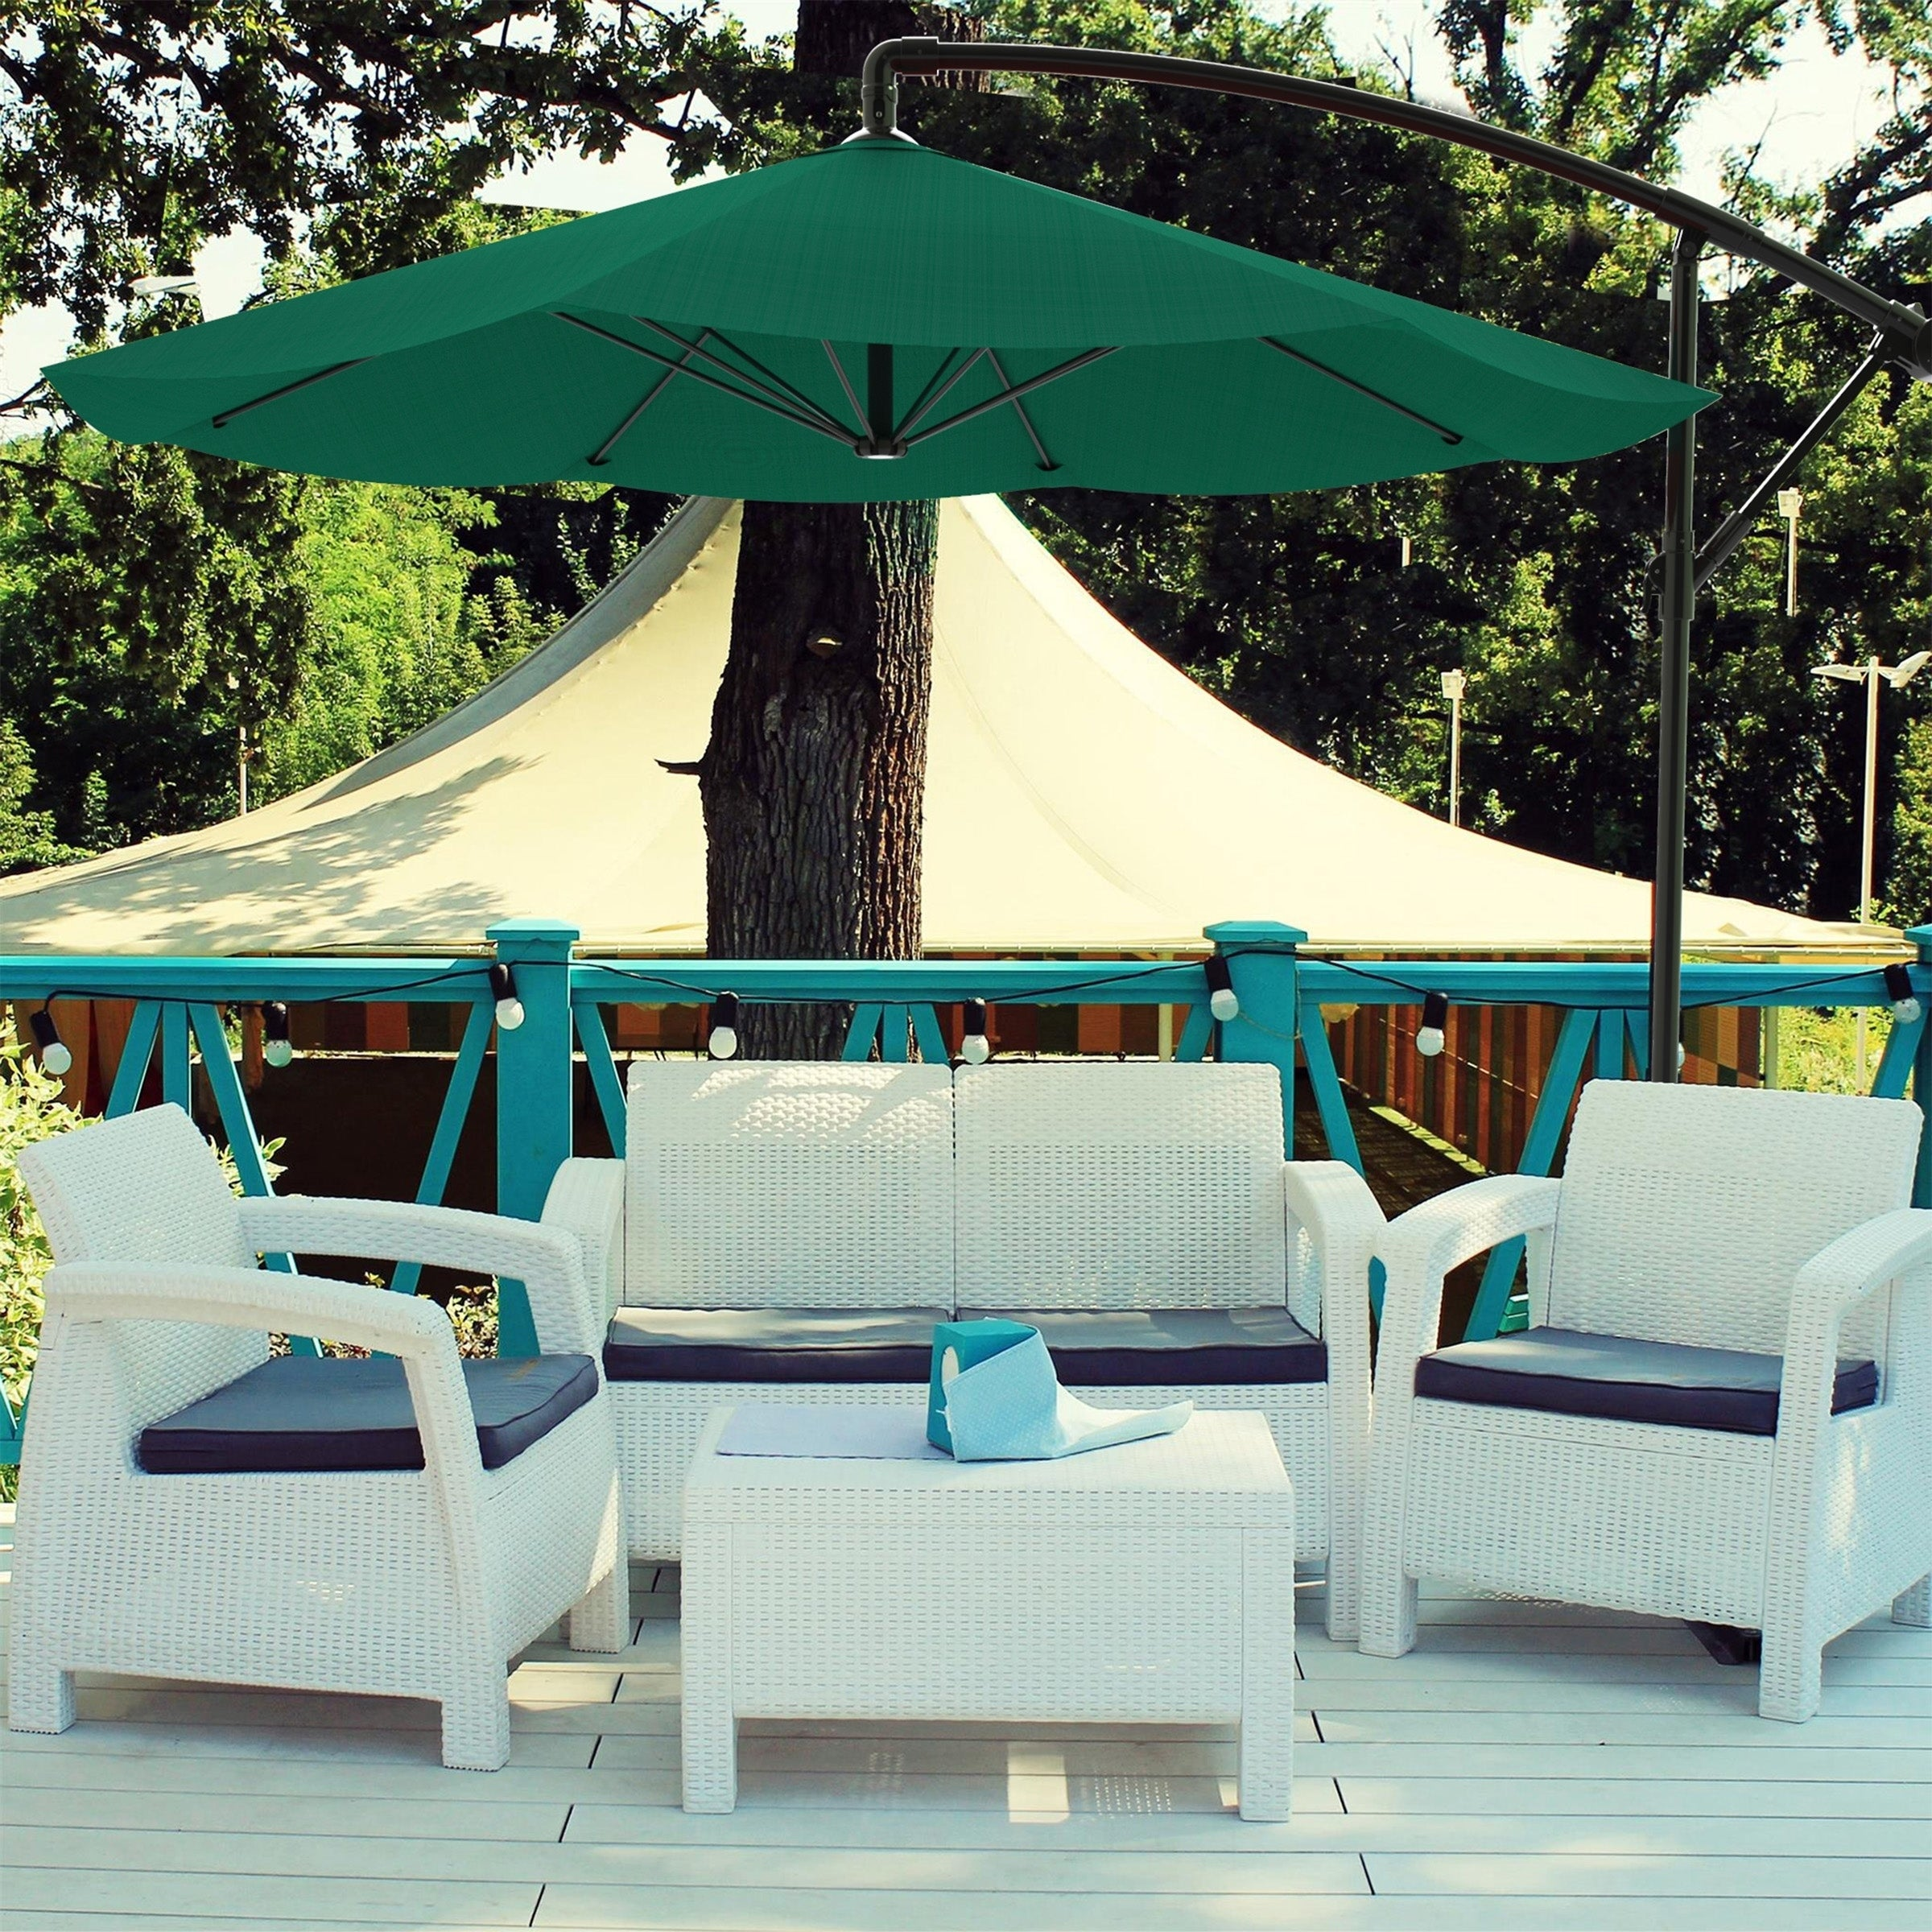 Strange Patio Umbrella Cantilever Hanging Outdoor Shade Easy Crank And Base For Table 10 Ft By Pure Garden Download Free Architecture Designs Ferenbritishbridgeorg